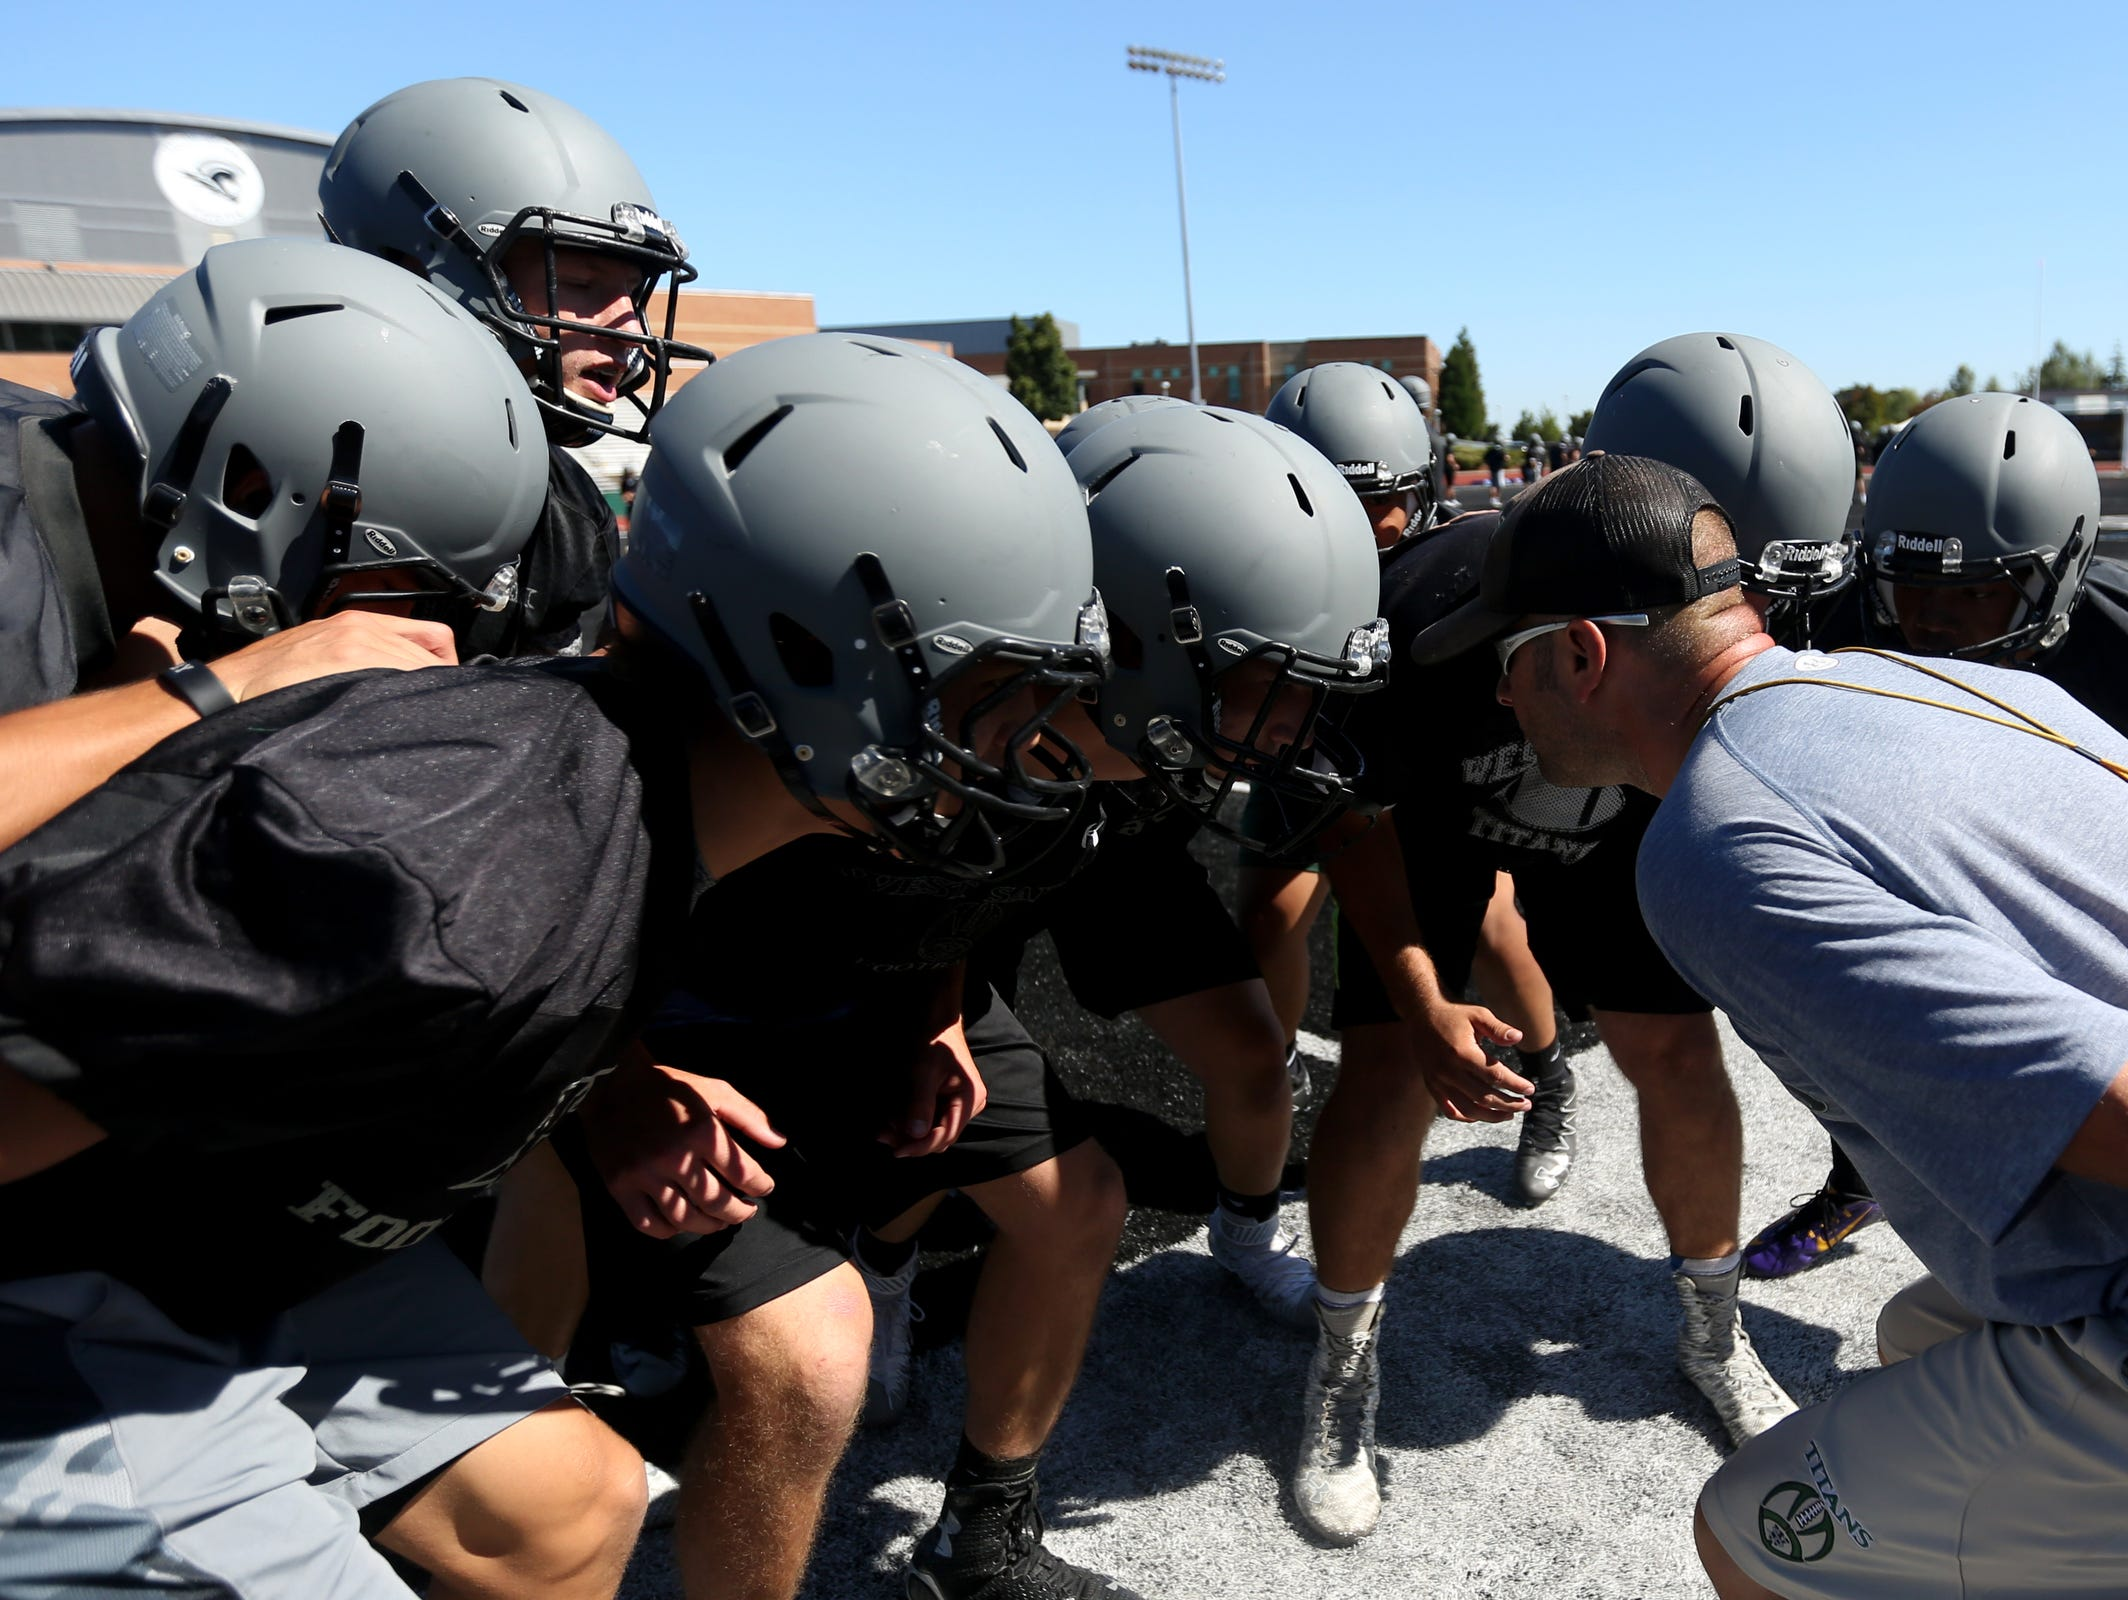 Chris Vandiver, the linebacker coach, leads a drill during football practice at West Salem High School on Monday, Aug. 15, 2016.